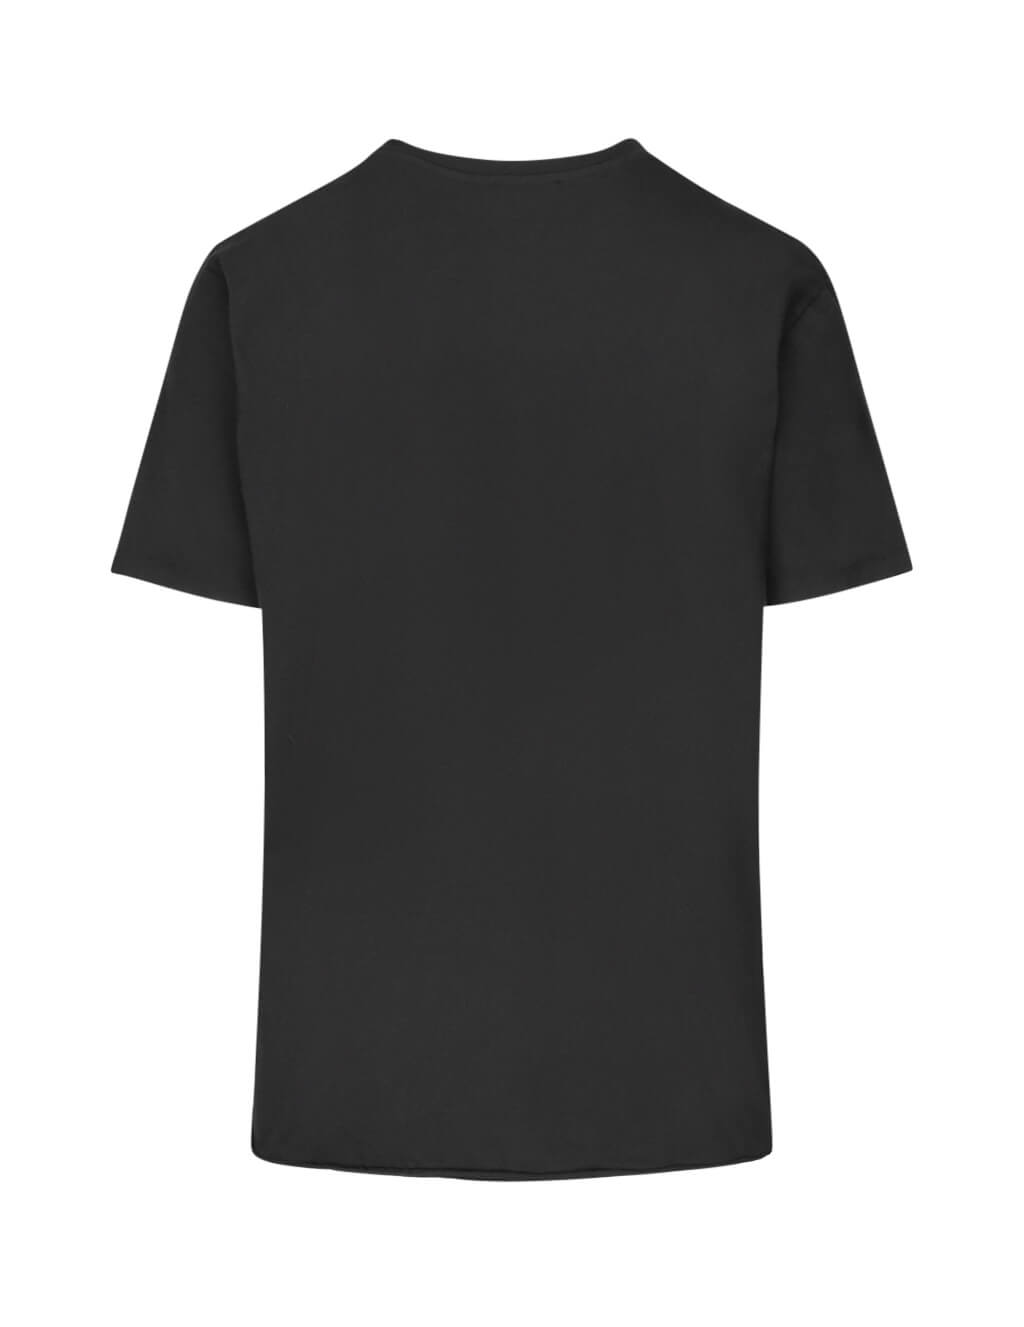 Saint Laurent Men's Giulio Fashion Black Love T-Shirt 585368YBKZ21081